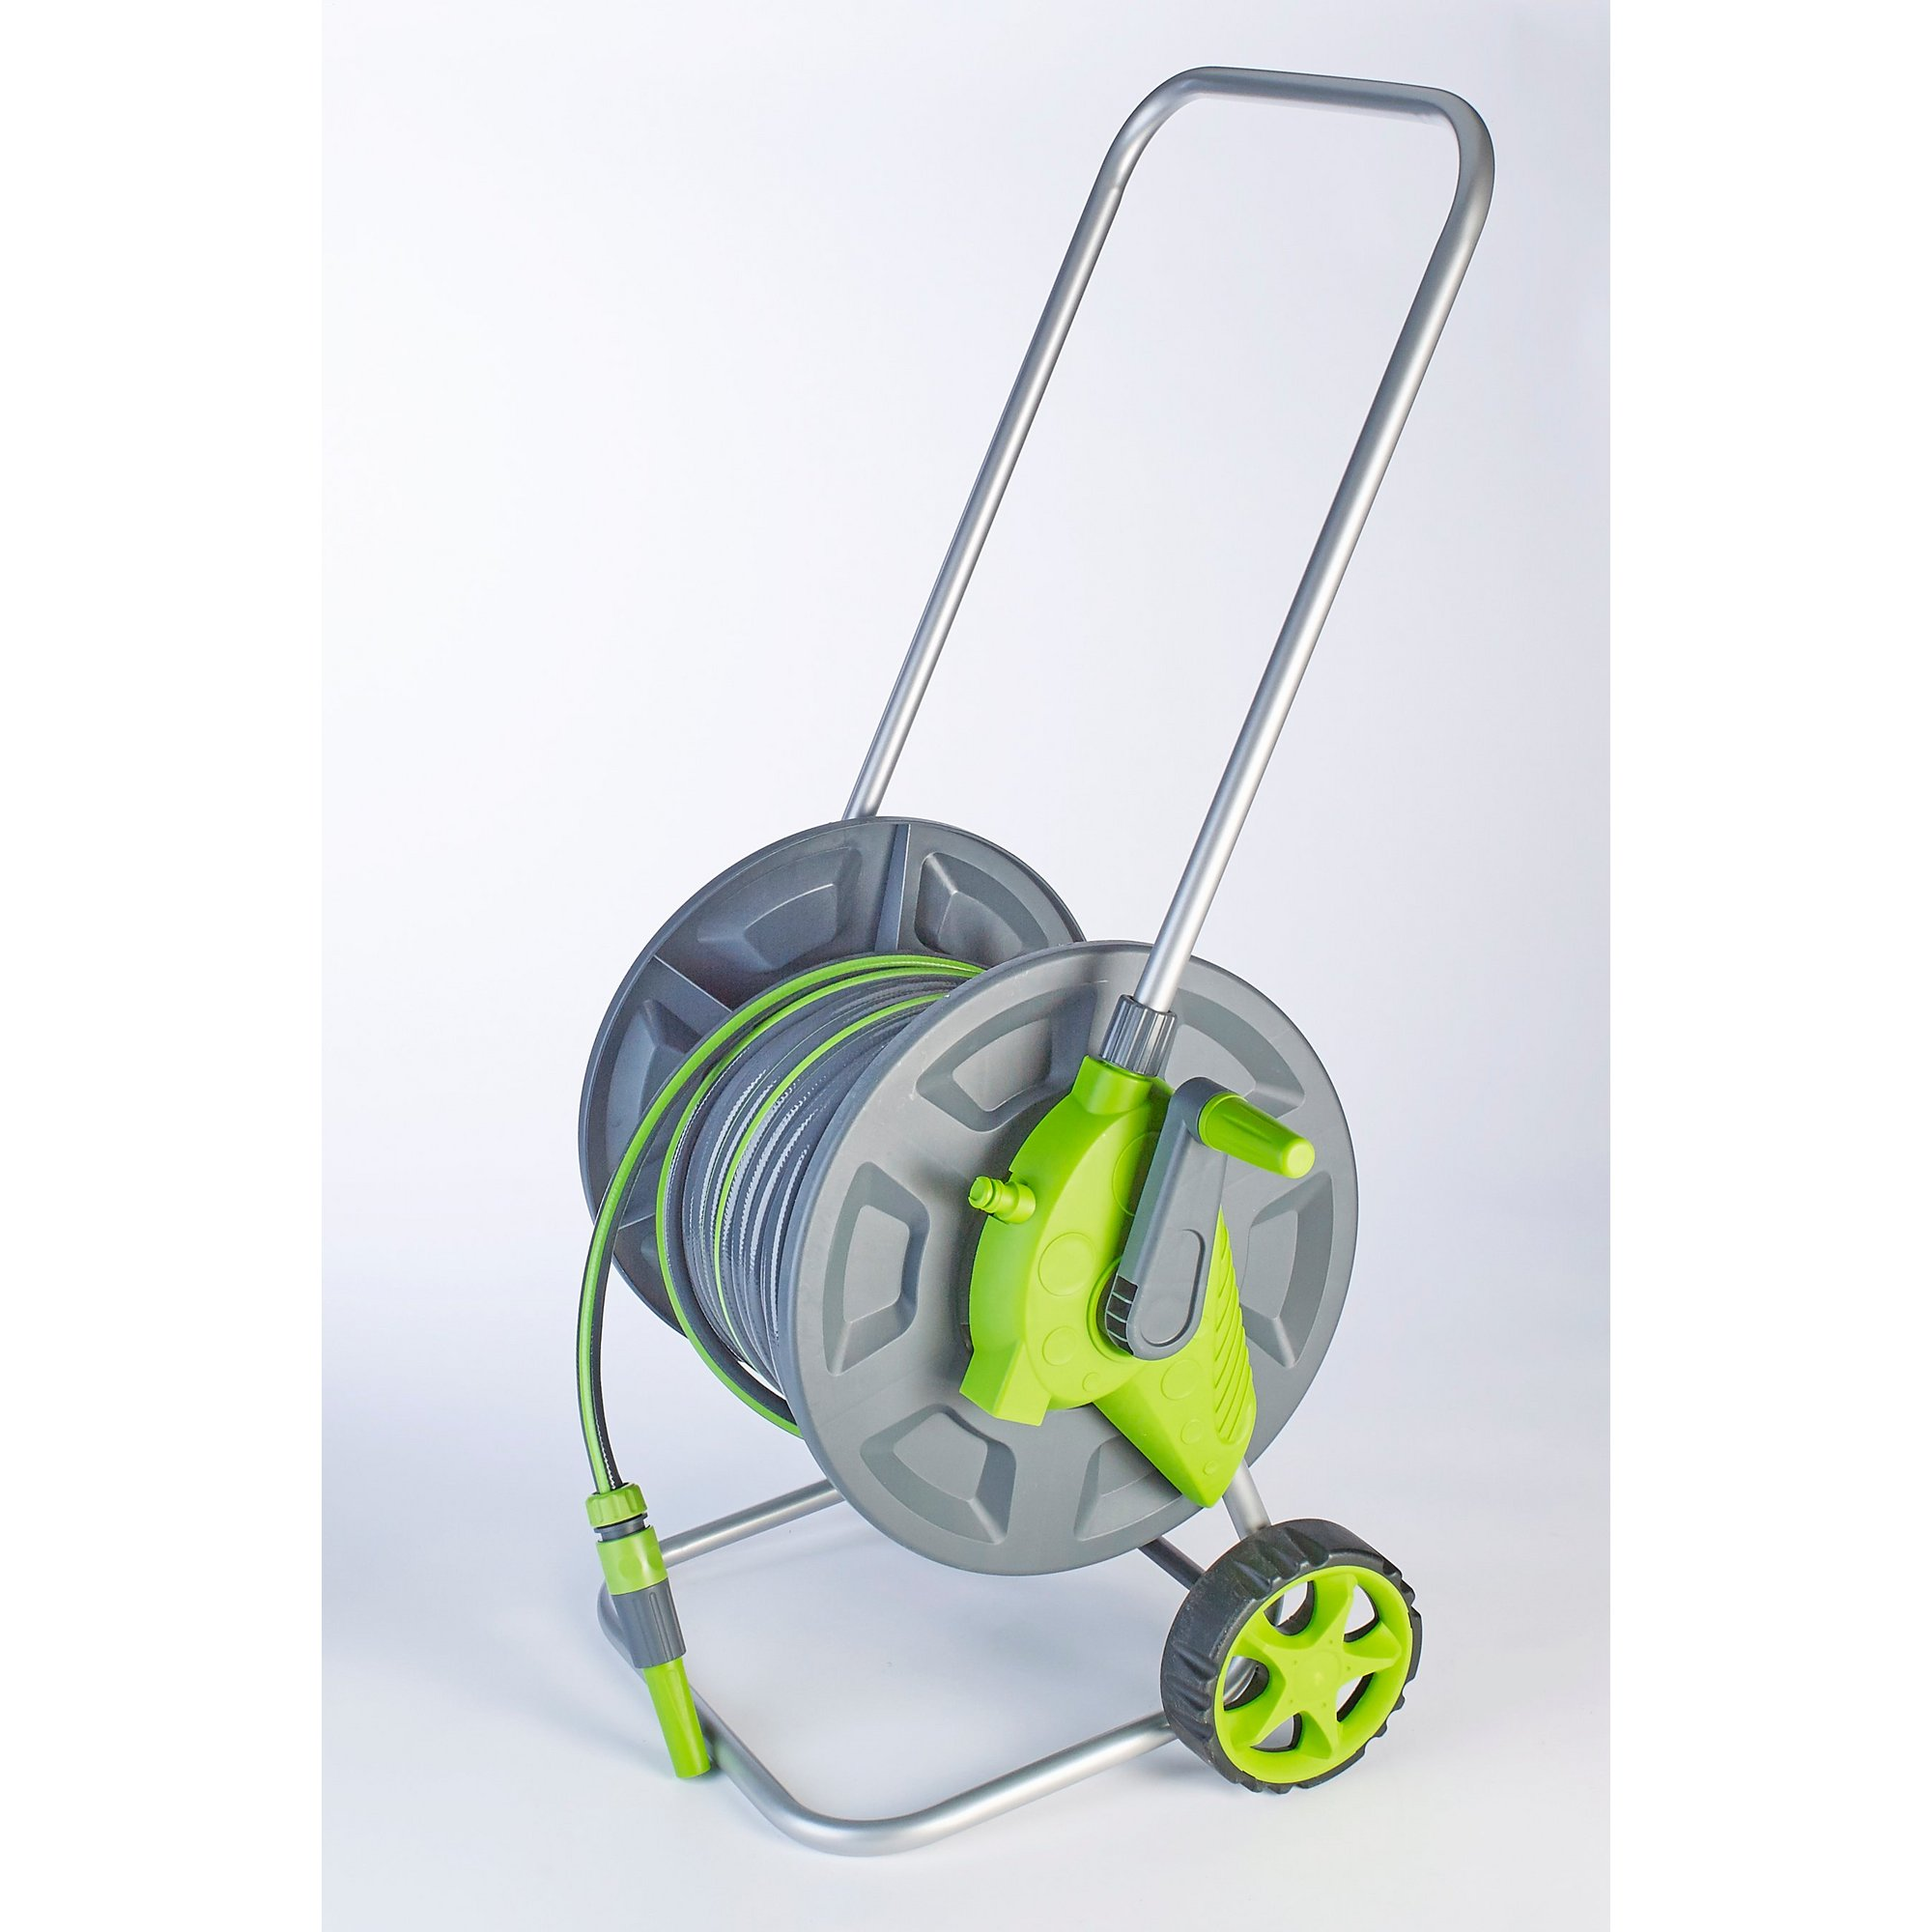 Image of 25m Telescopic Hose Cart and Accessories